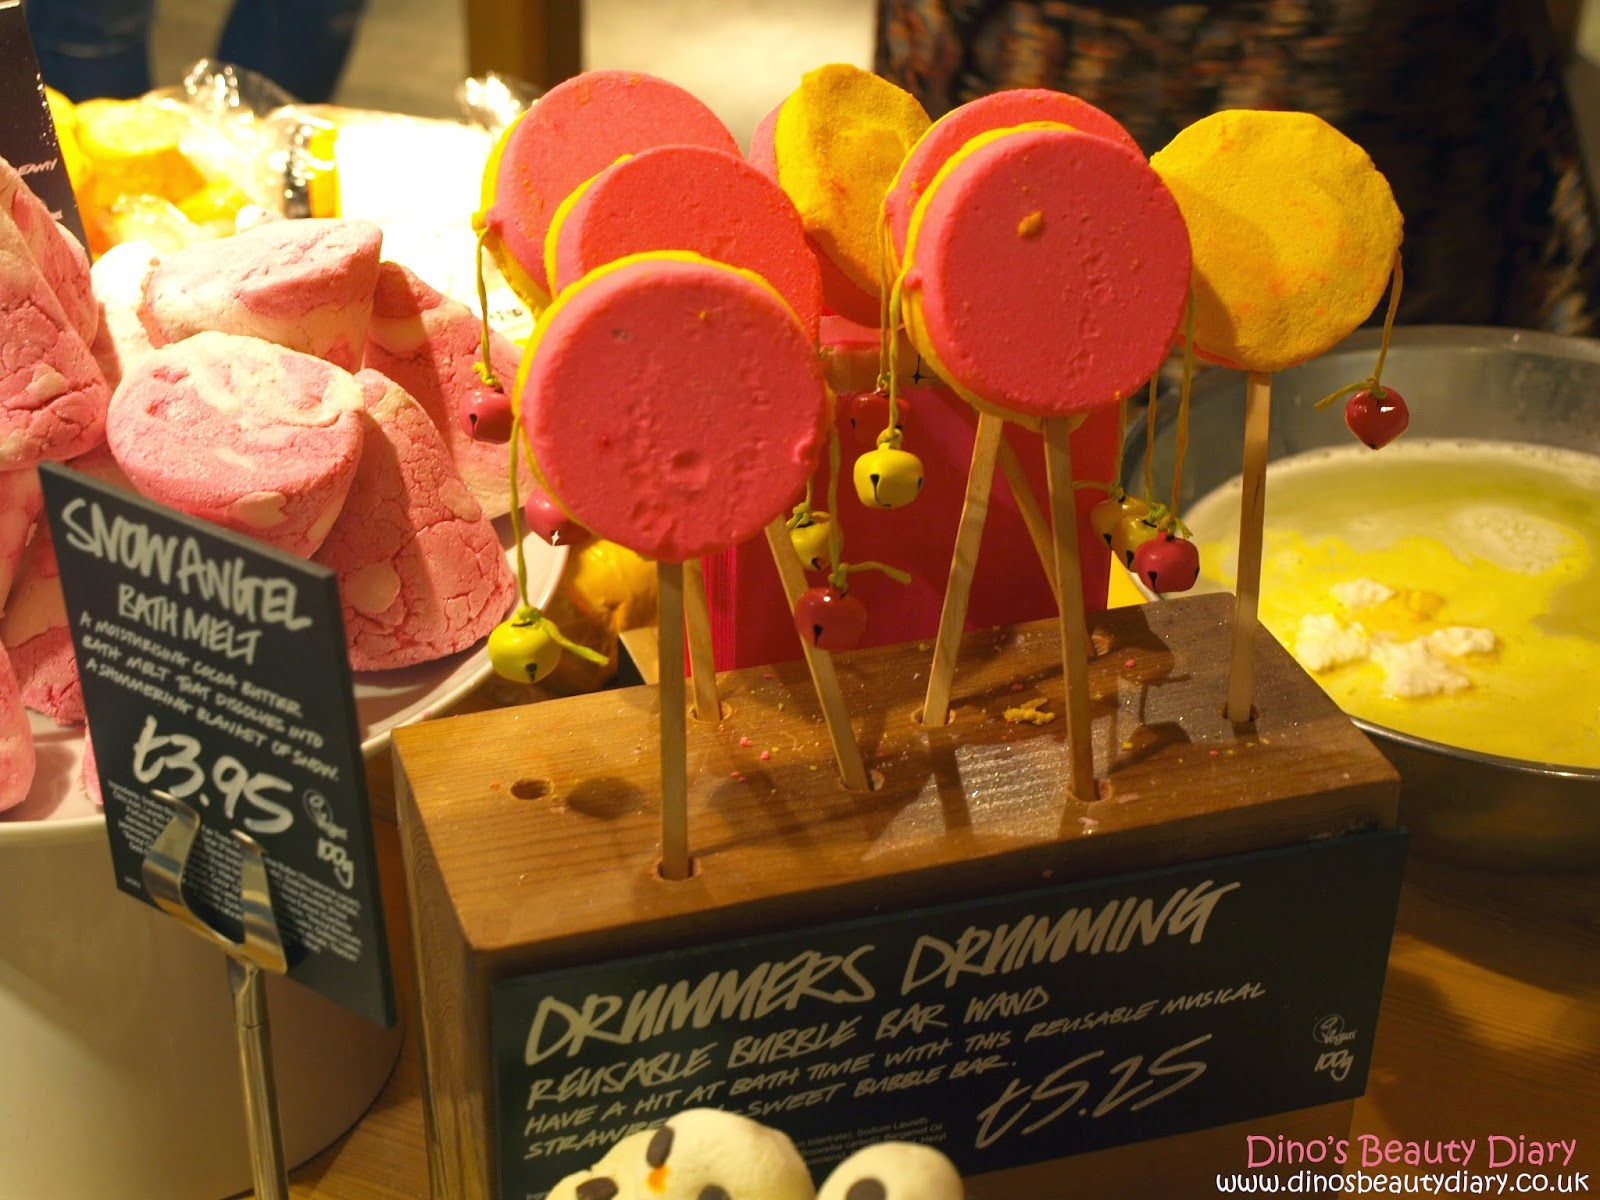 Dino's Beauty Diary - Lush Nottingham Bloggers Event - drummers drumming bubble bars